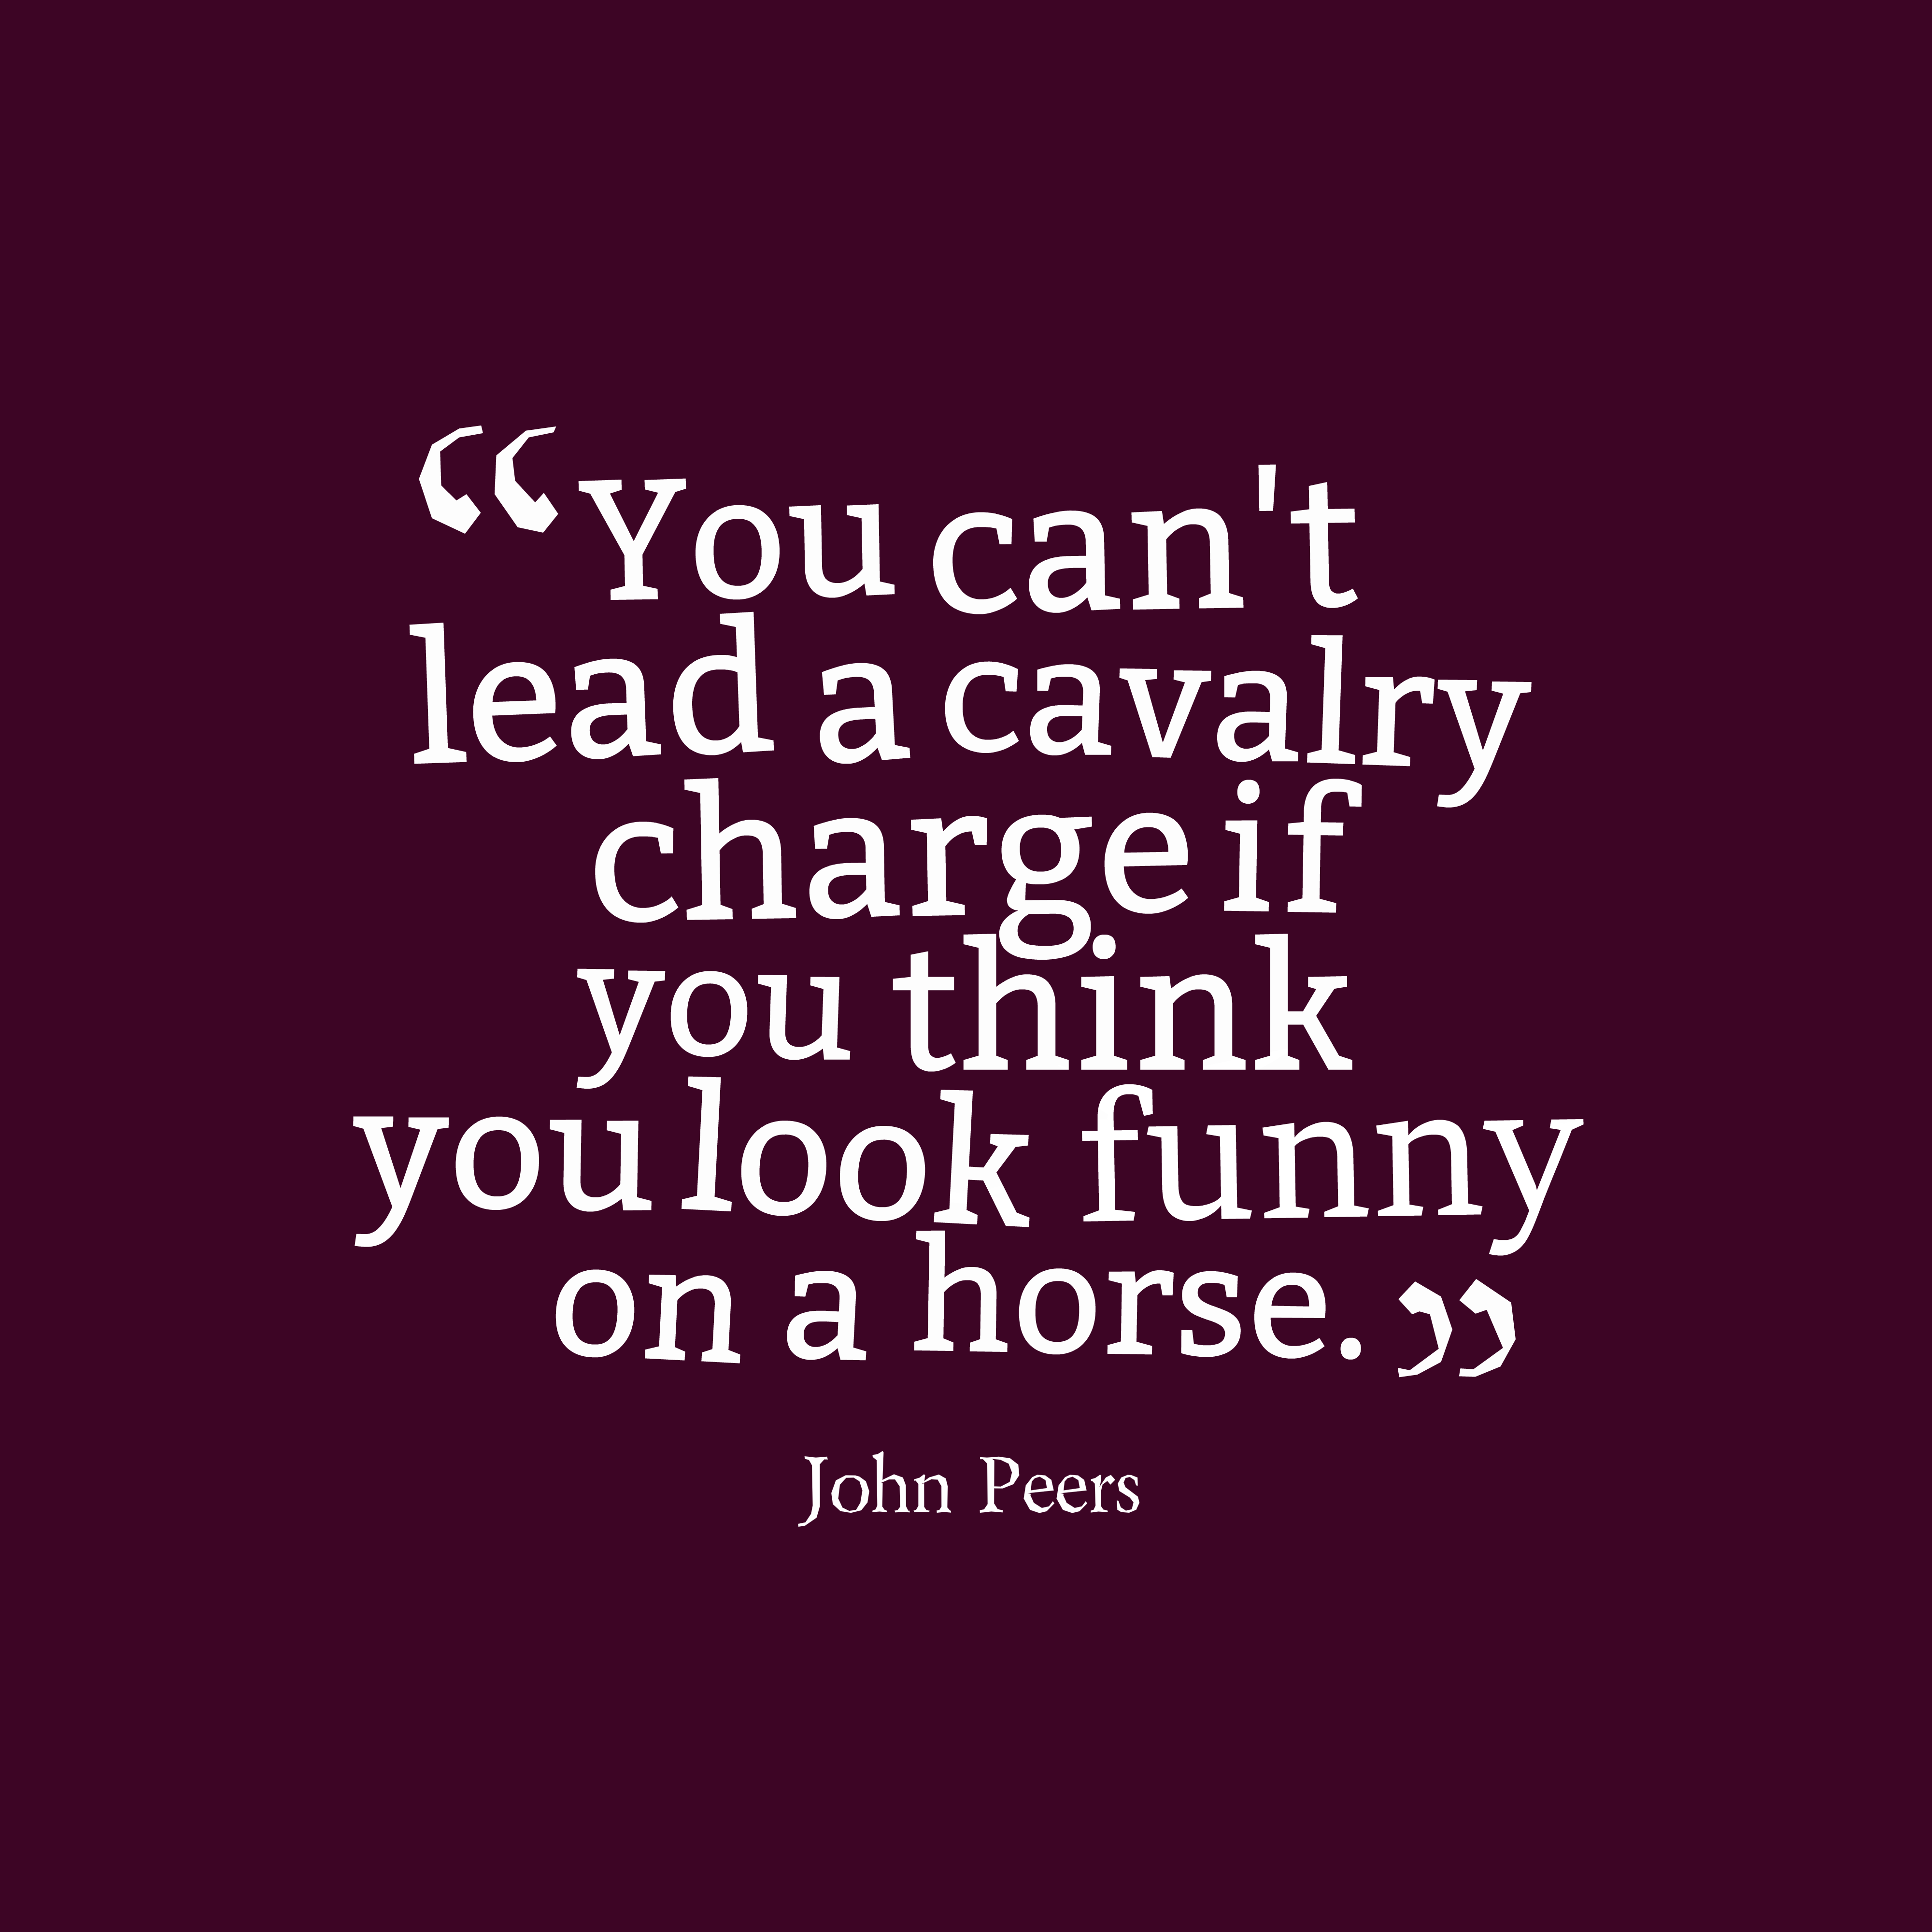 Quotes image of You can't lead a cavalry charge if you think you look funny on a horse.